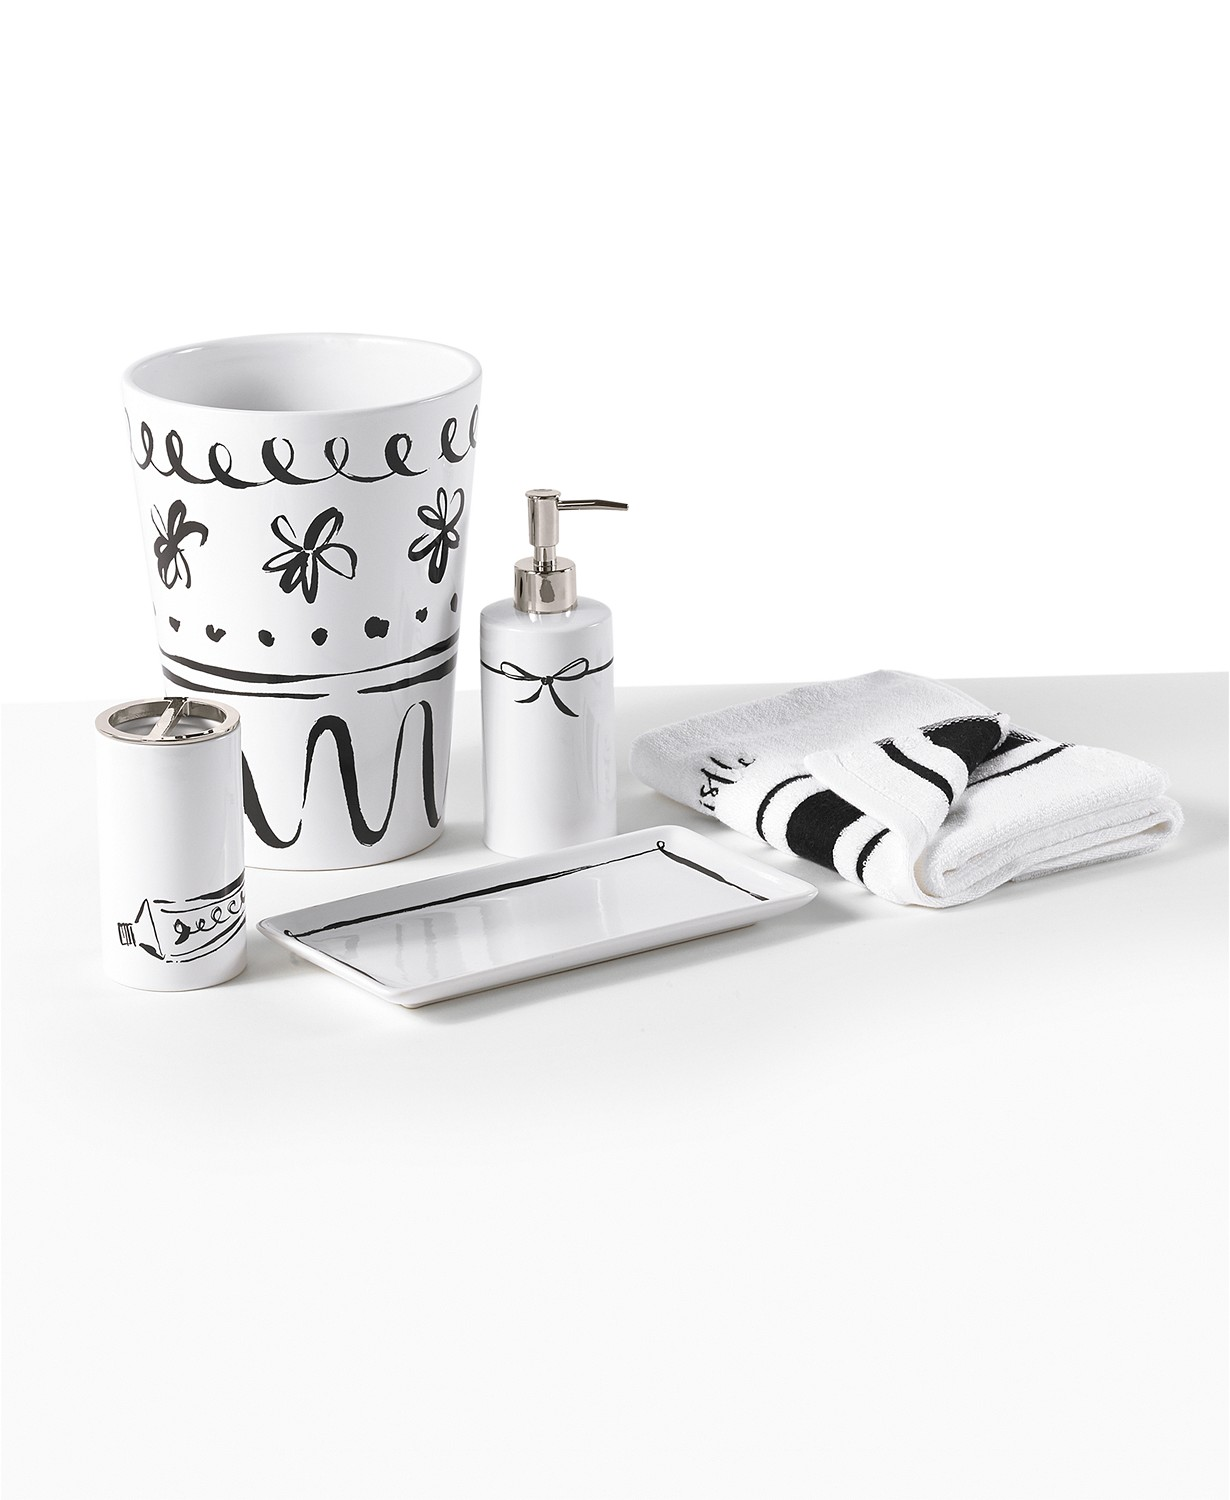 Daisy Place Bath Accessories Kate Spade New York